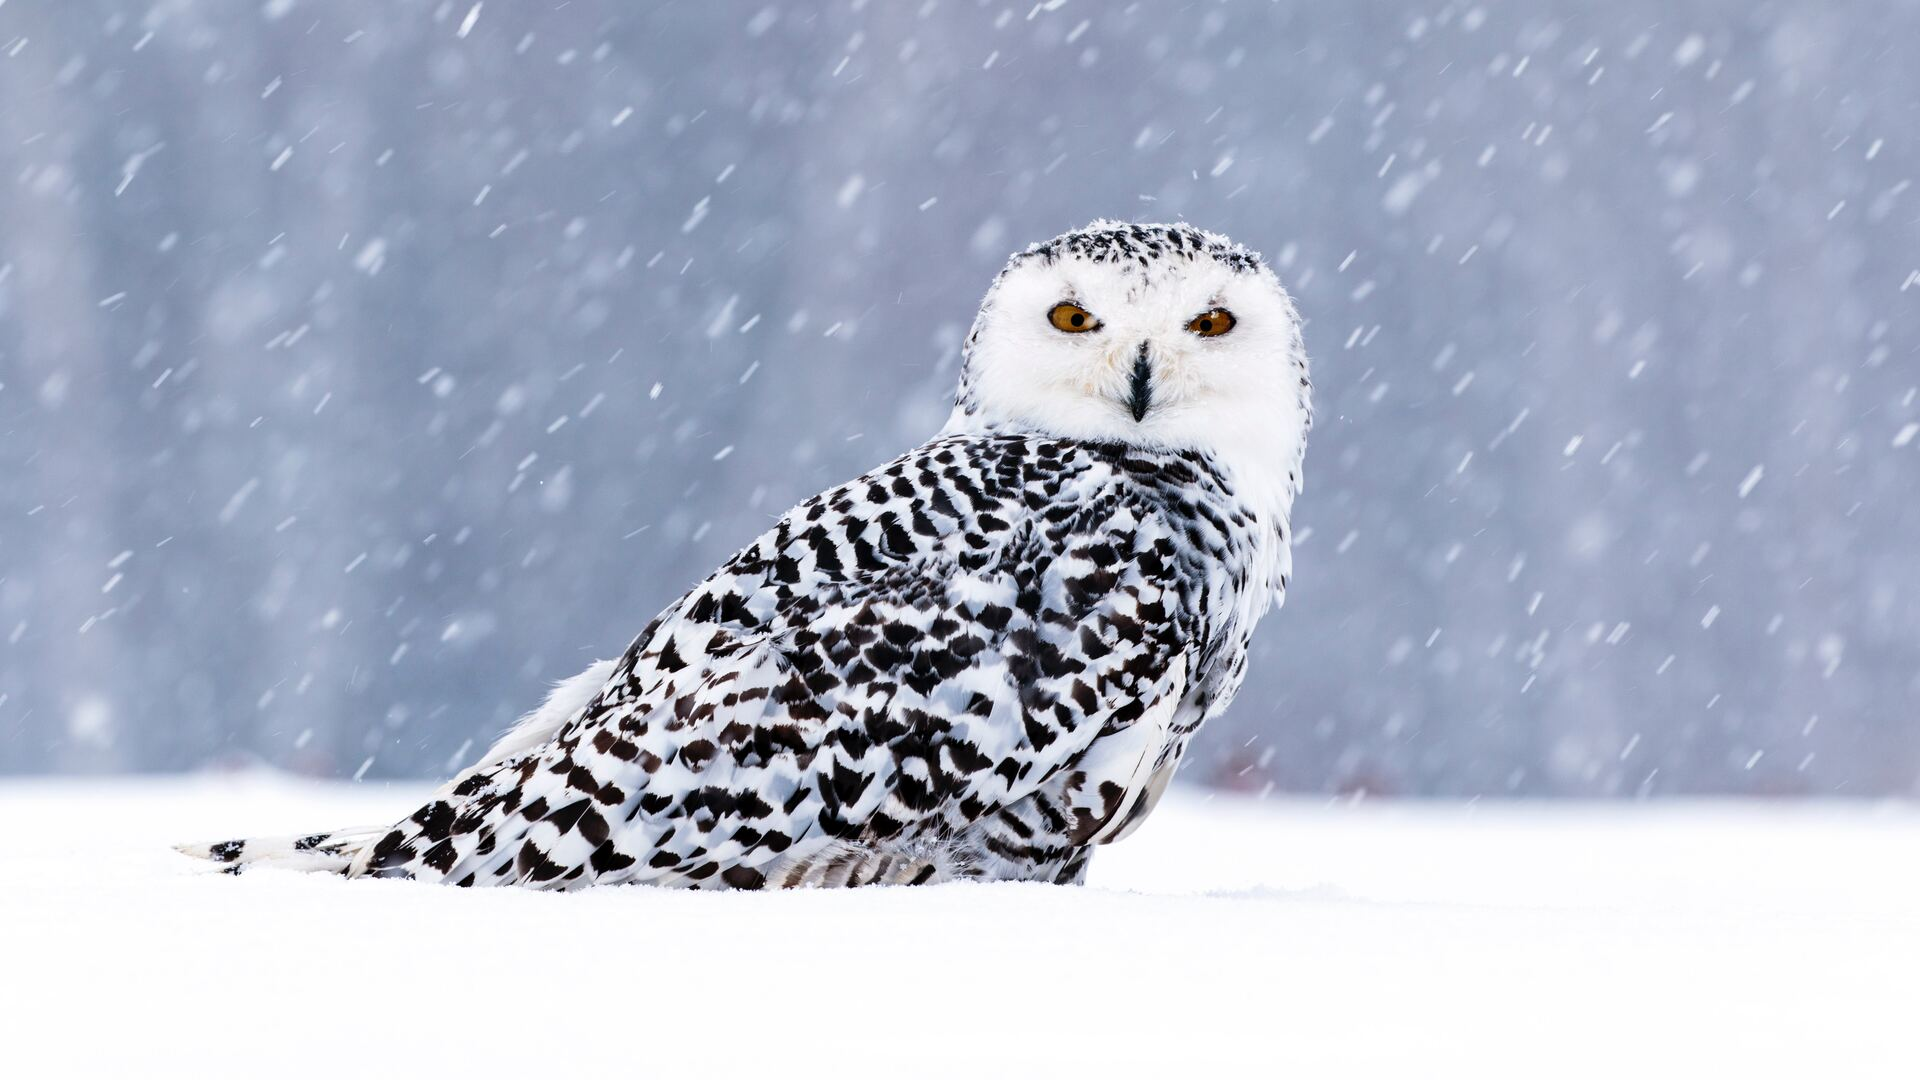 1920x1080 White Owl In Snow 5k Laptop Full Hd 1080p Hd 4k